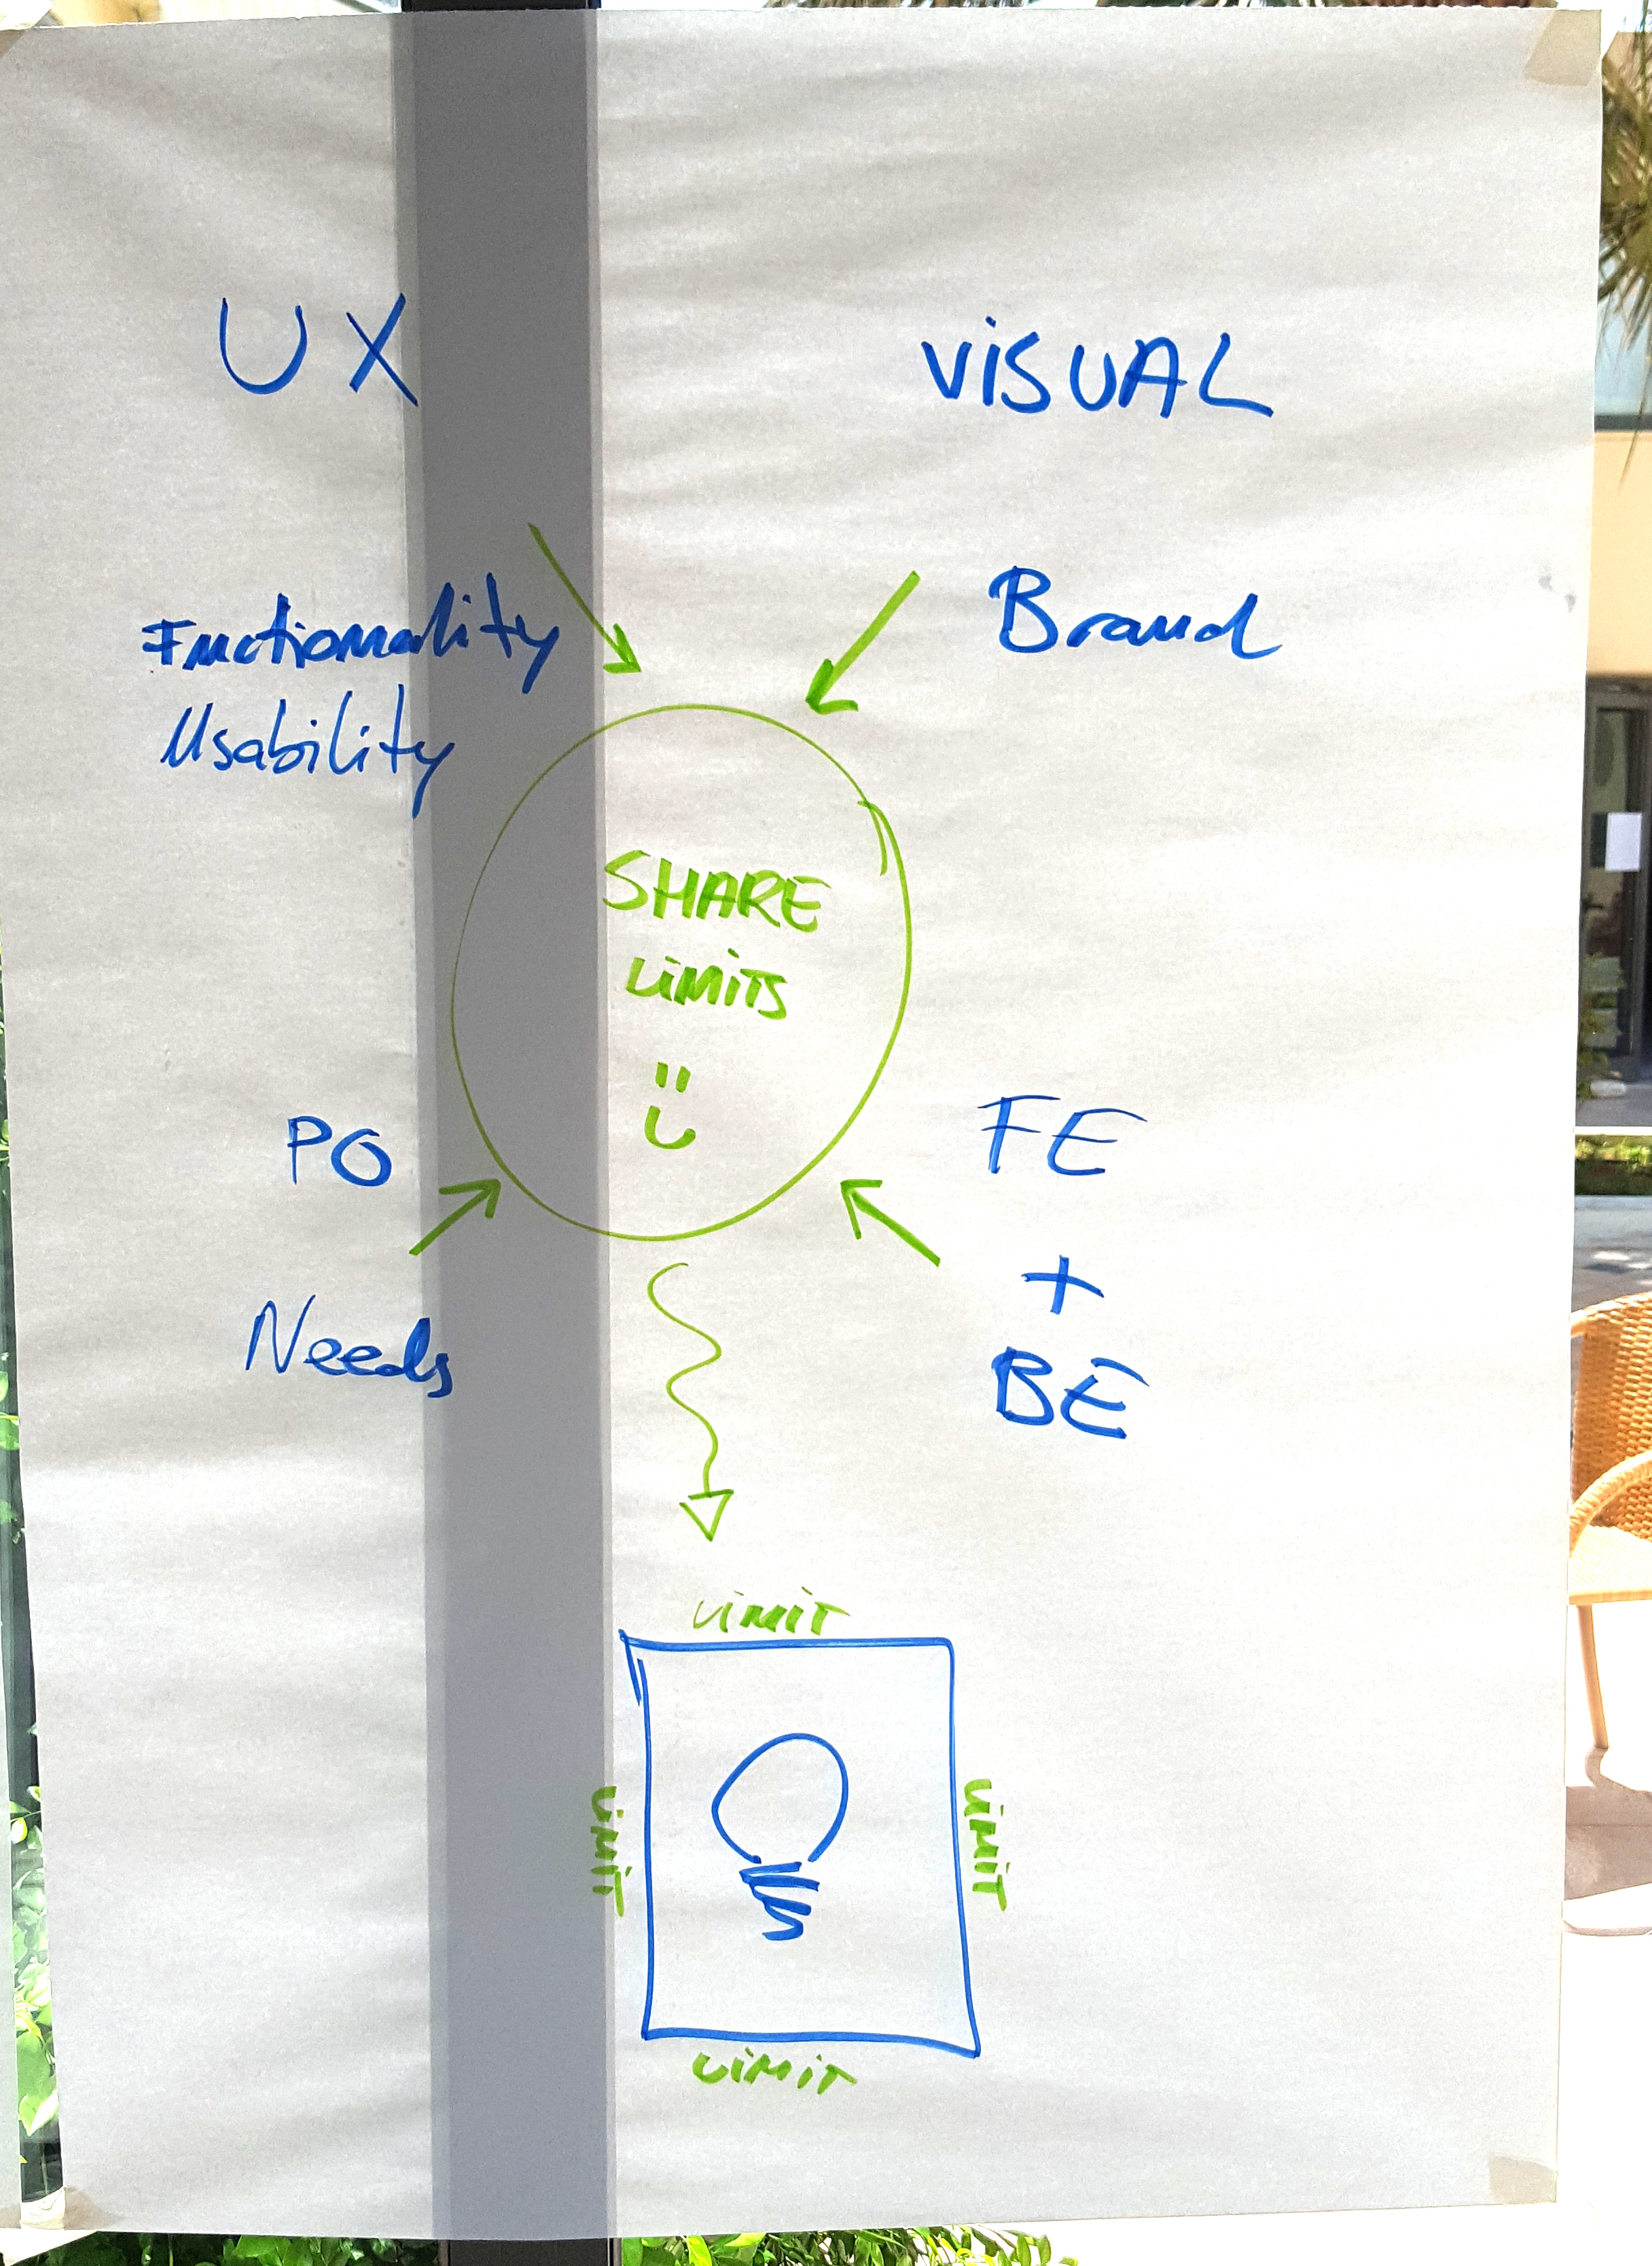 Harvest - Working with UX or Designers 3